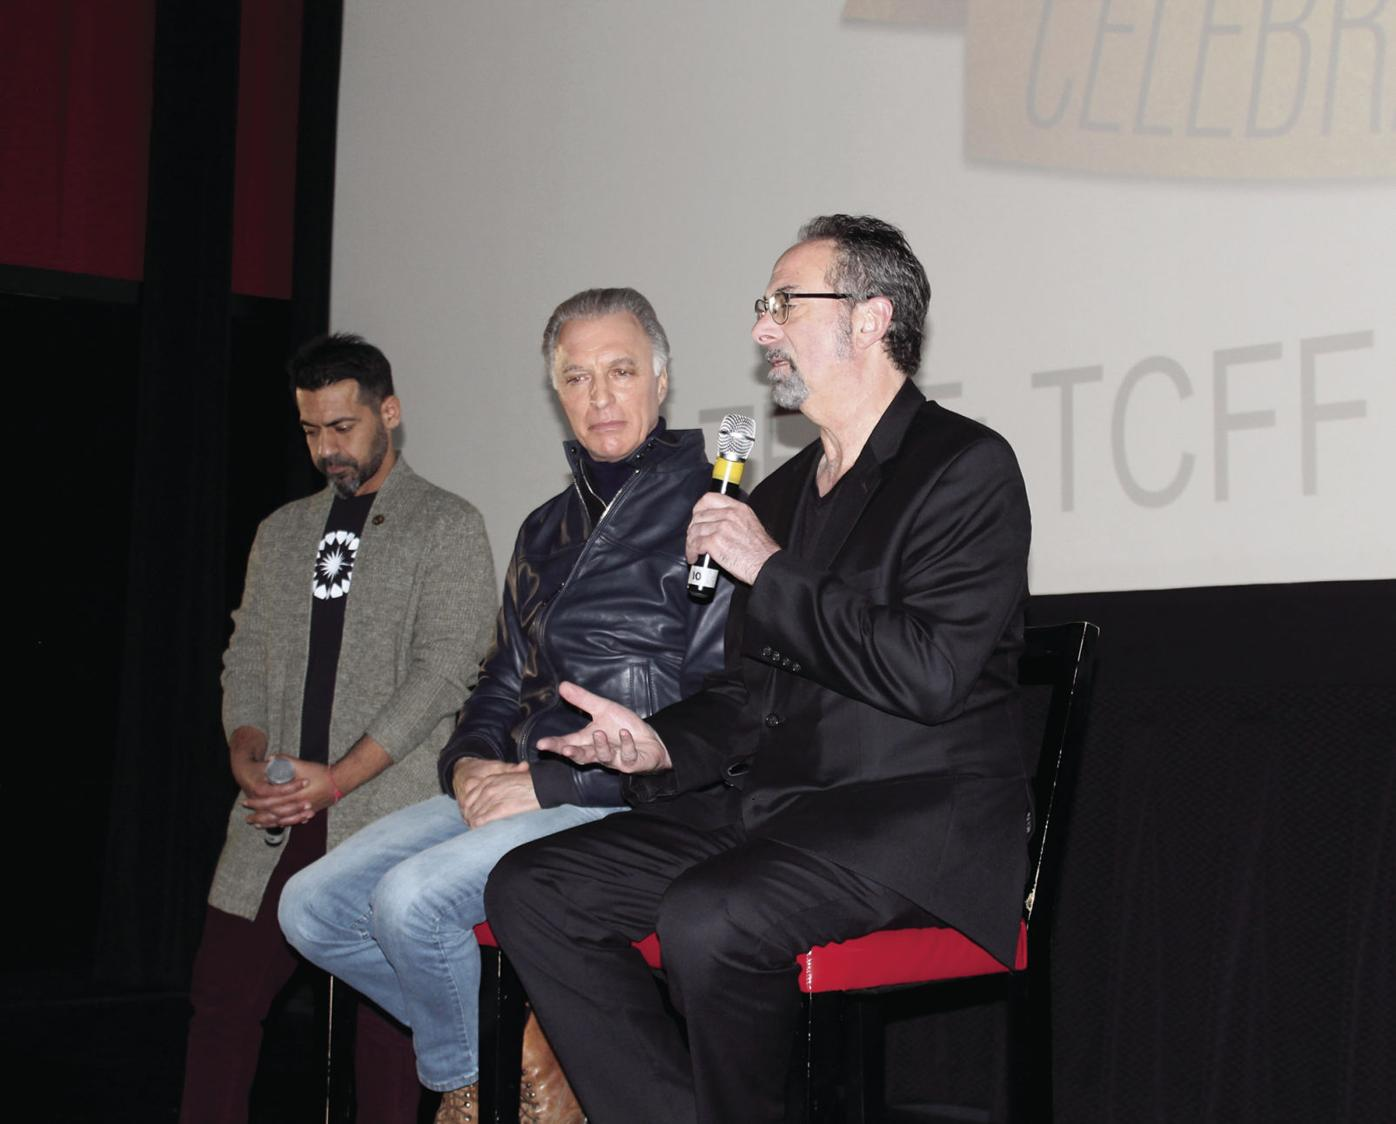 Writer and director of 'Purple Rain' celebrates film's 35th anniversary with Bobby Z. at St. Louis Park screening - 9